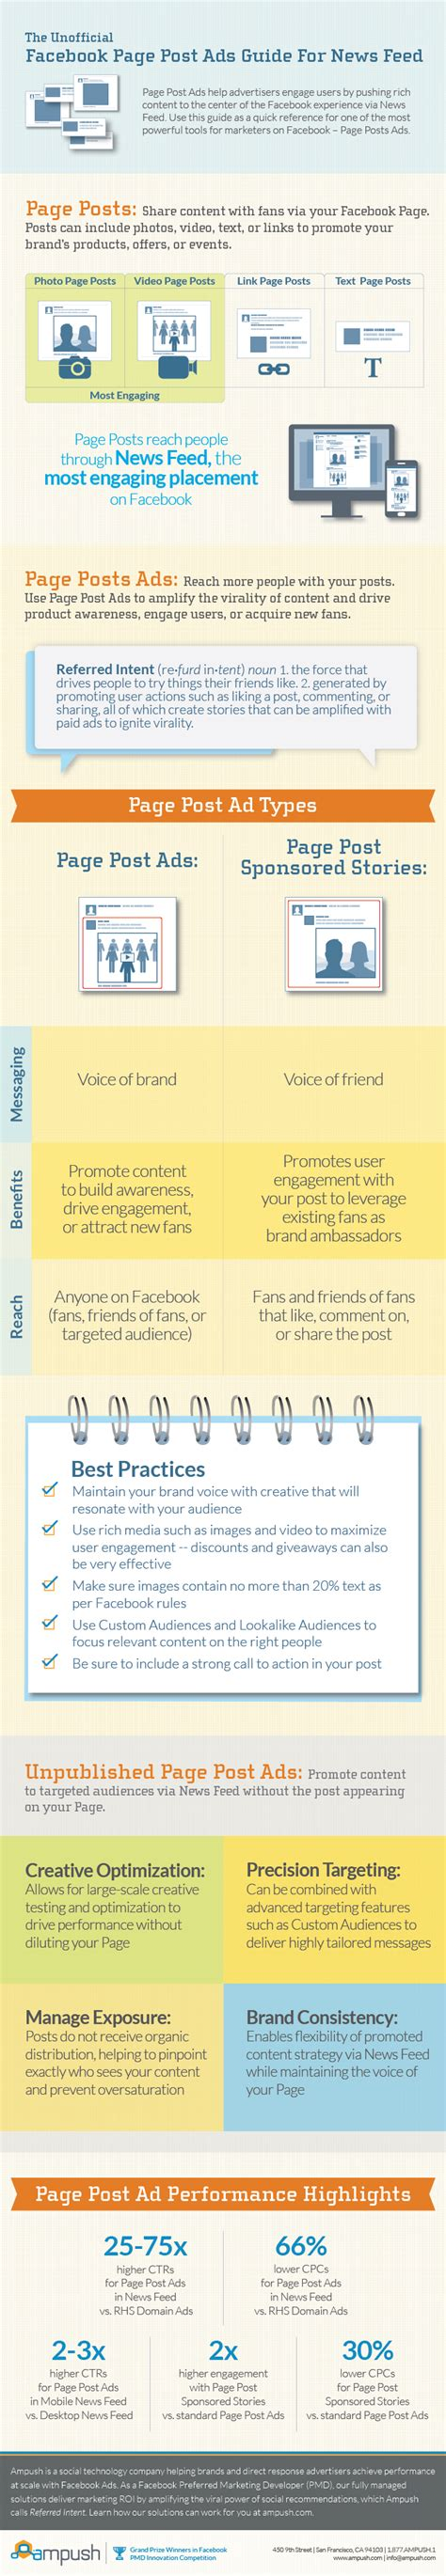 Search For Pages Or Posts Infographic A Guide To Page Post Ads